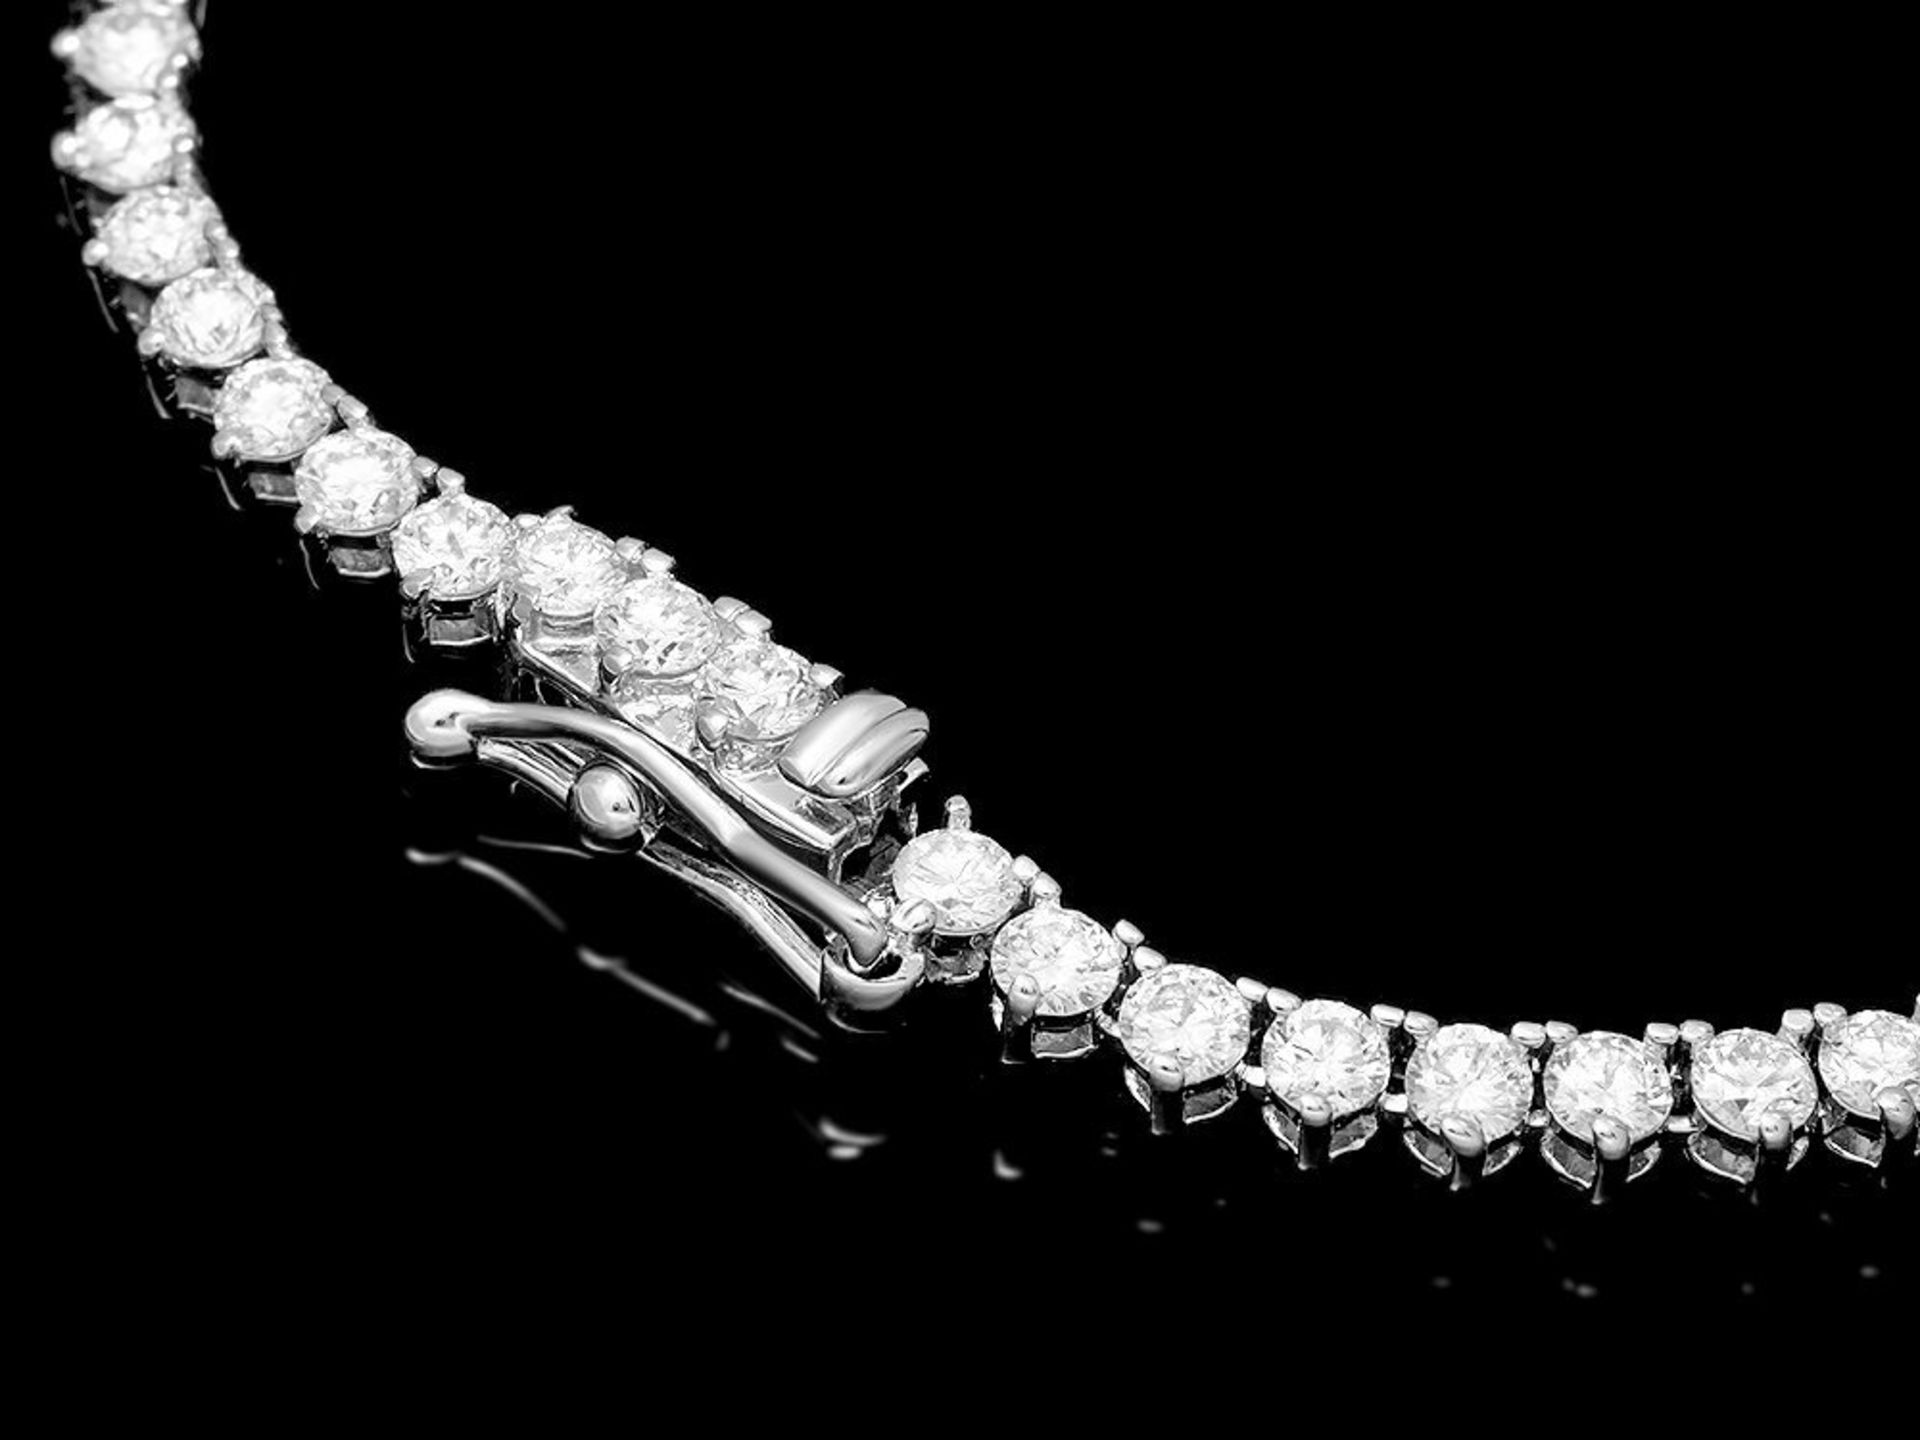 18k White Gold 8.00ct Diamond Necklace - Image 3 of 4